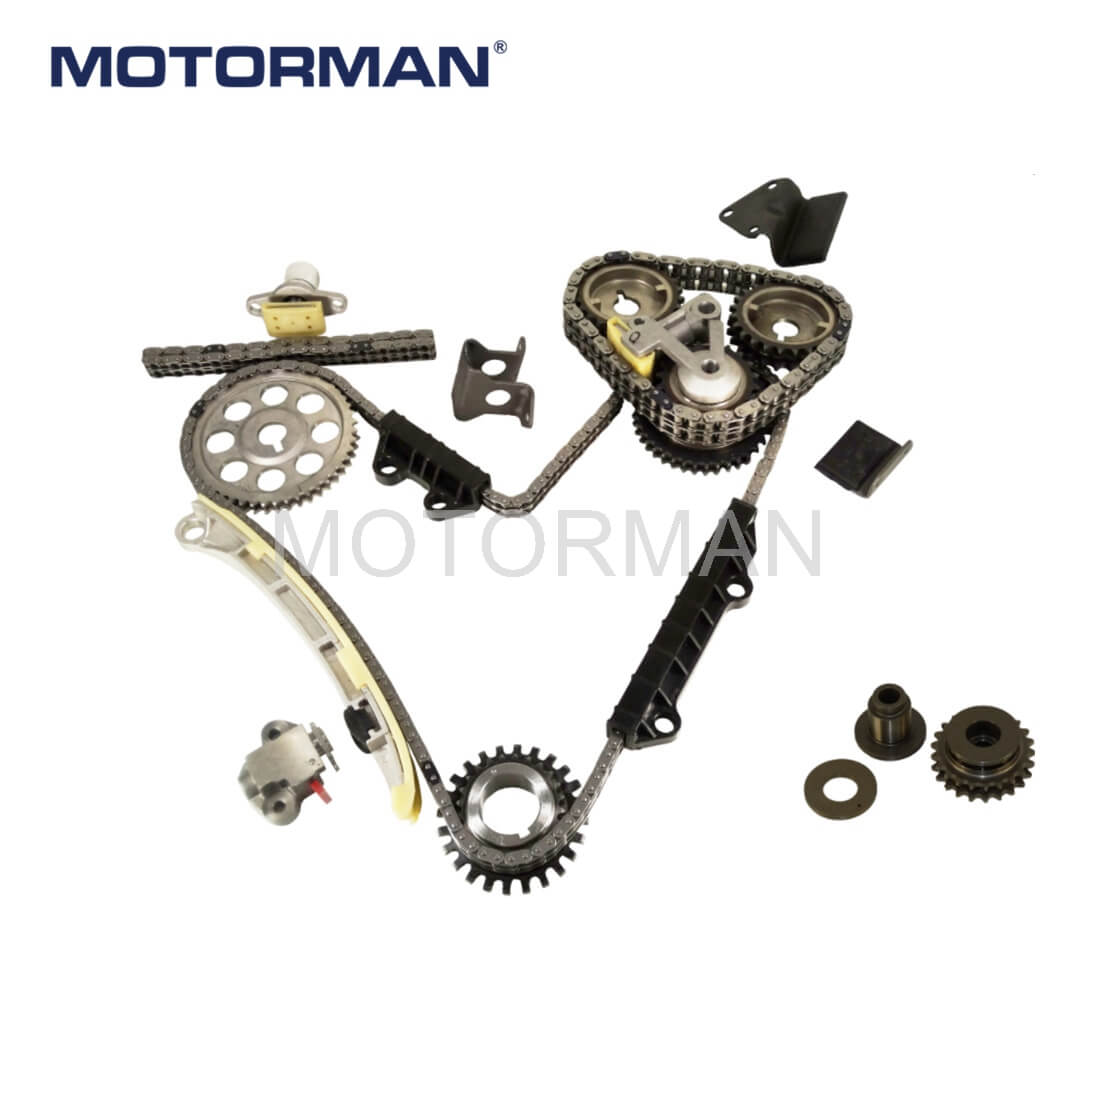 Motorman Timing Chain Kits 12761-85FA0